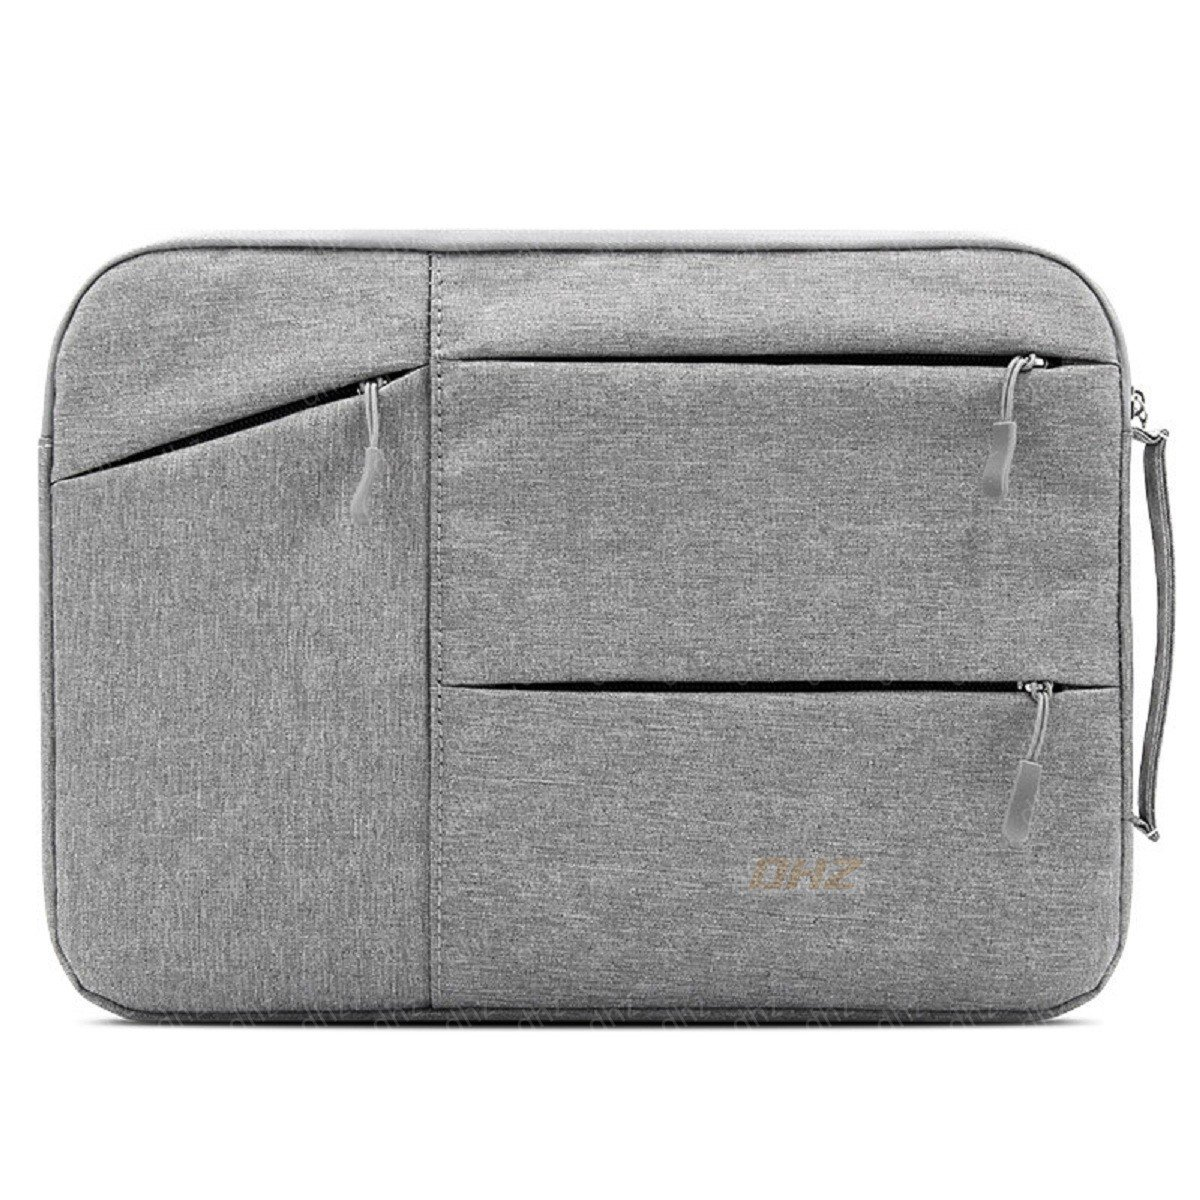 11-12 Inch Laptop Sleeve Briefcase DHZ Handbag for MacBook 12'' Retina,MacBook Air 11.6'',Notebook Computer Polyester Shockproof,Spill-Resistant Protective Case Carrying Bag with Accessory Pockets,Gray